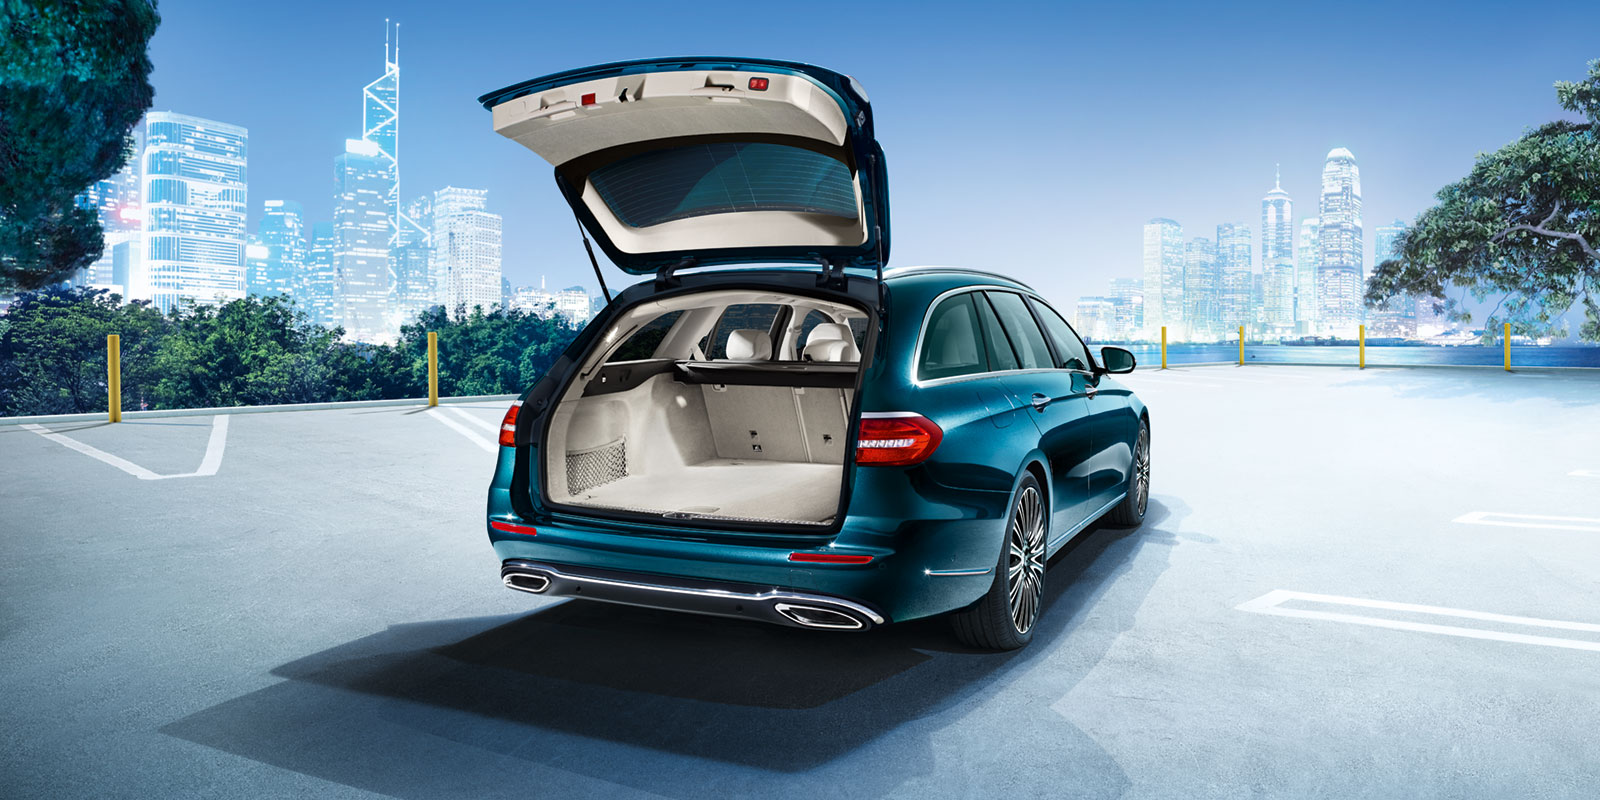 mercedes_benz_business_solutions_e_klasse_stationcar_1600x800_07